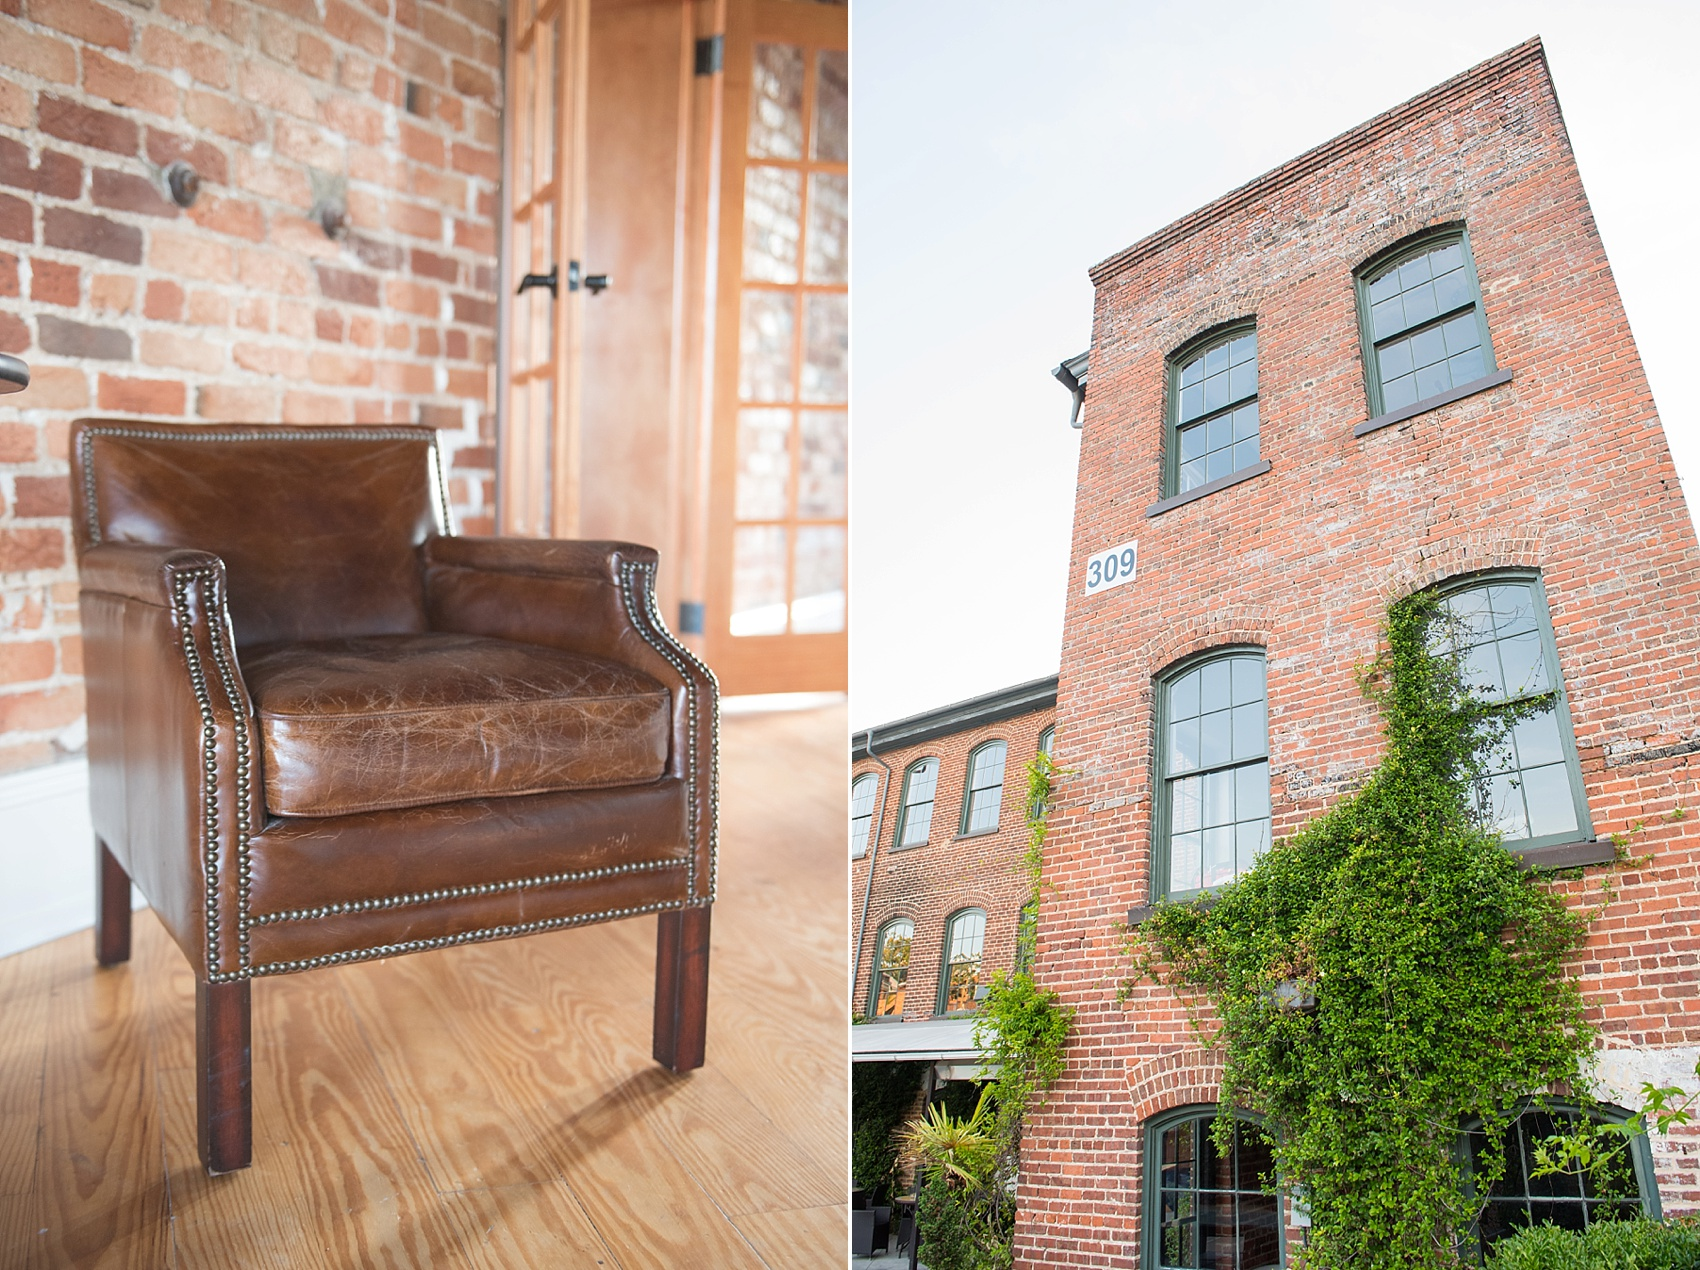 The Knitting Mill rustic charm venue in downtown Raleigh. Photos by Mikkel Paige Photography, Raleigh wedding photographer.